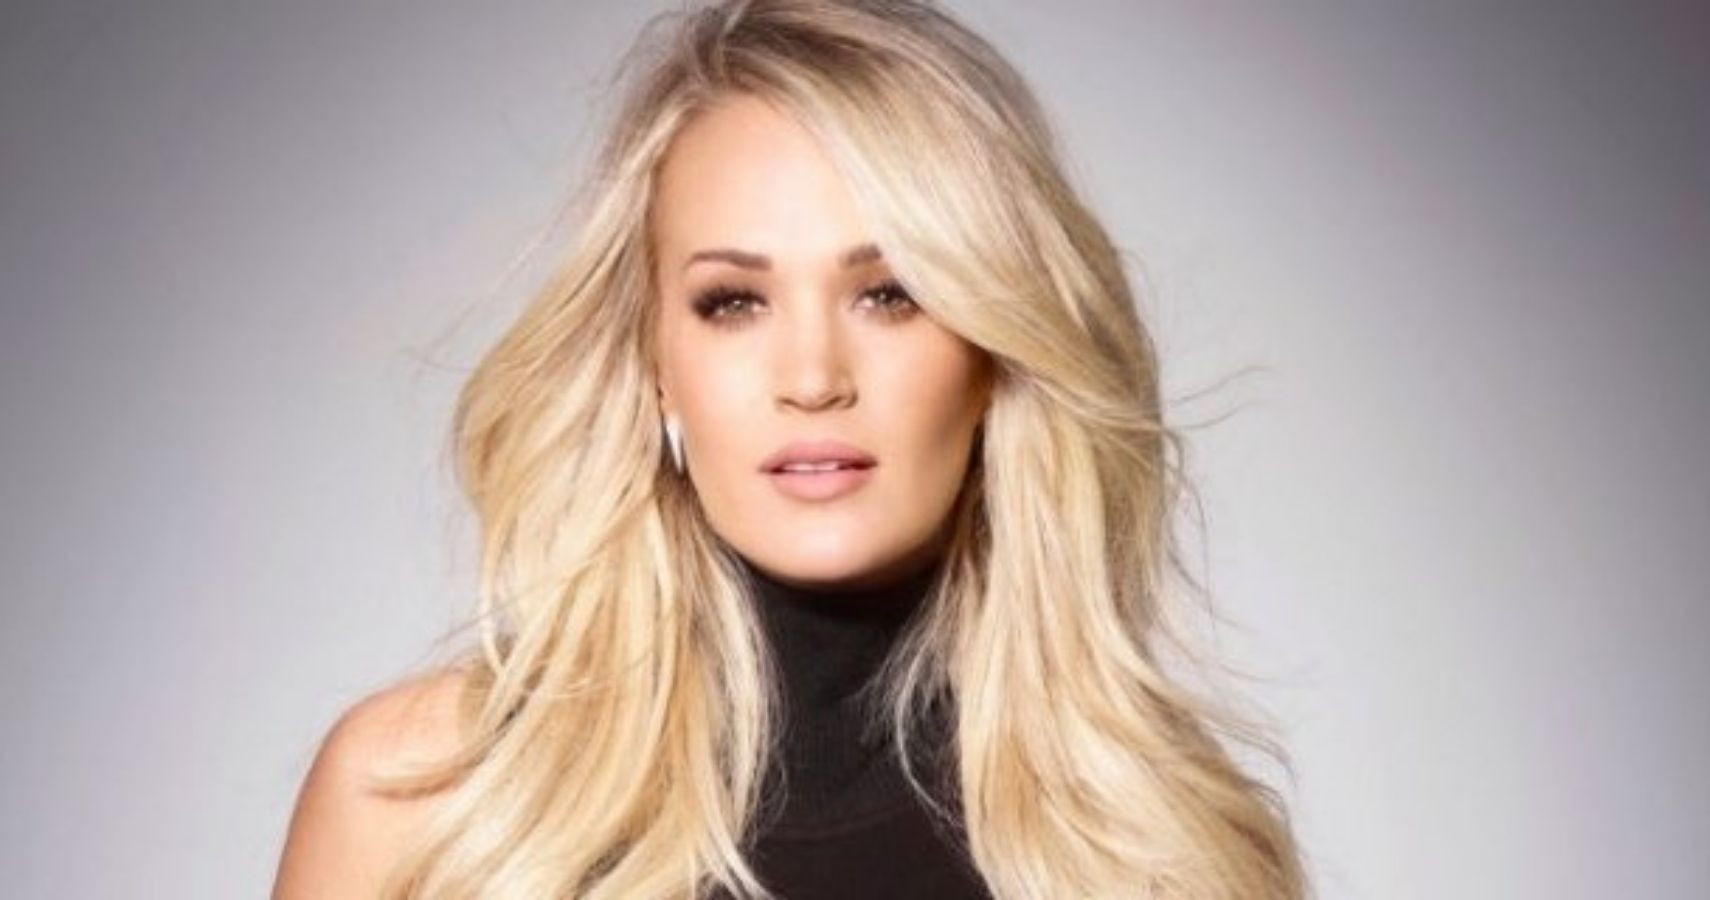 Carrie Underwood Shares Her Intense Post Baby Workout Routine